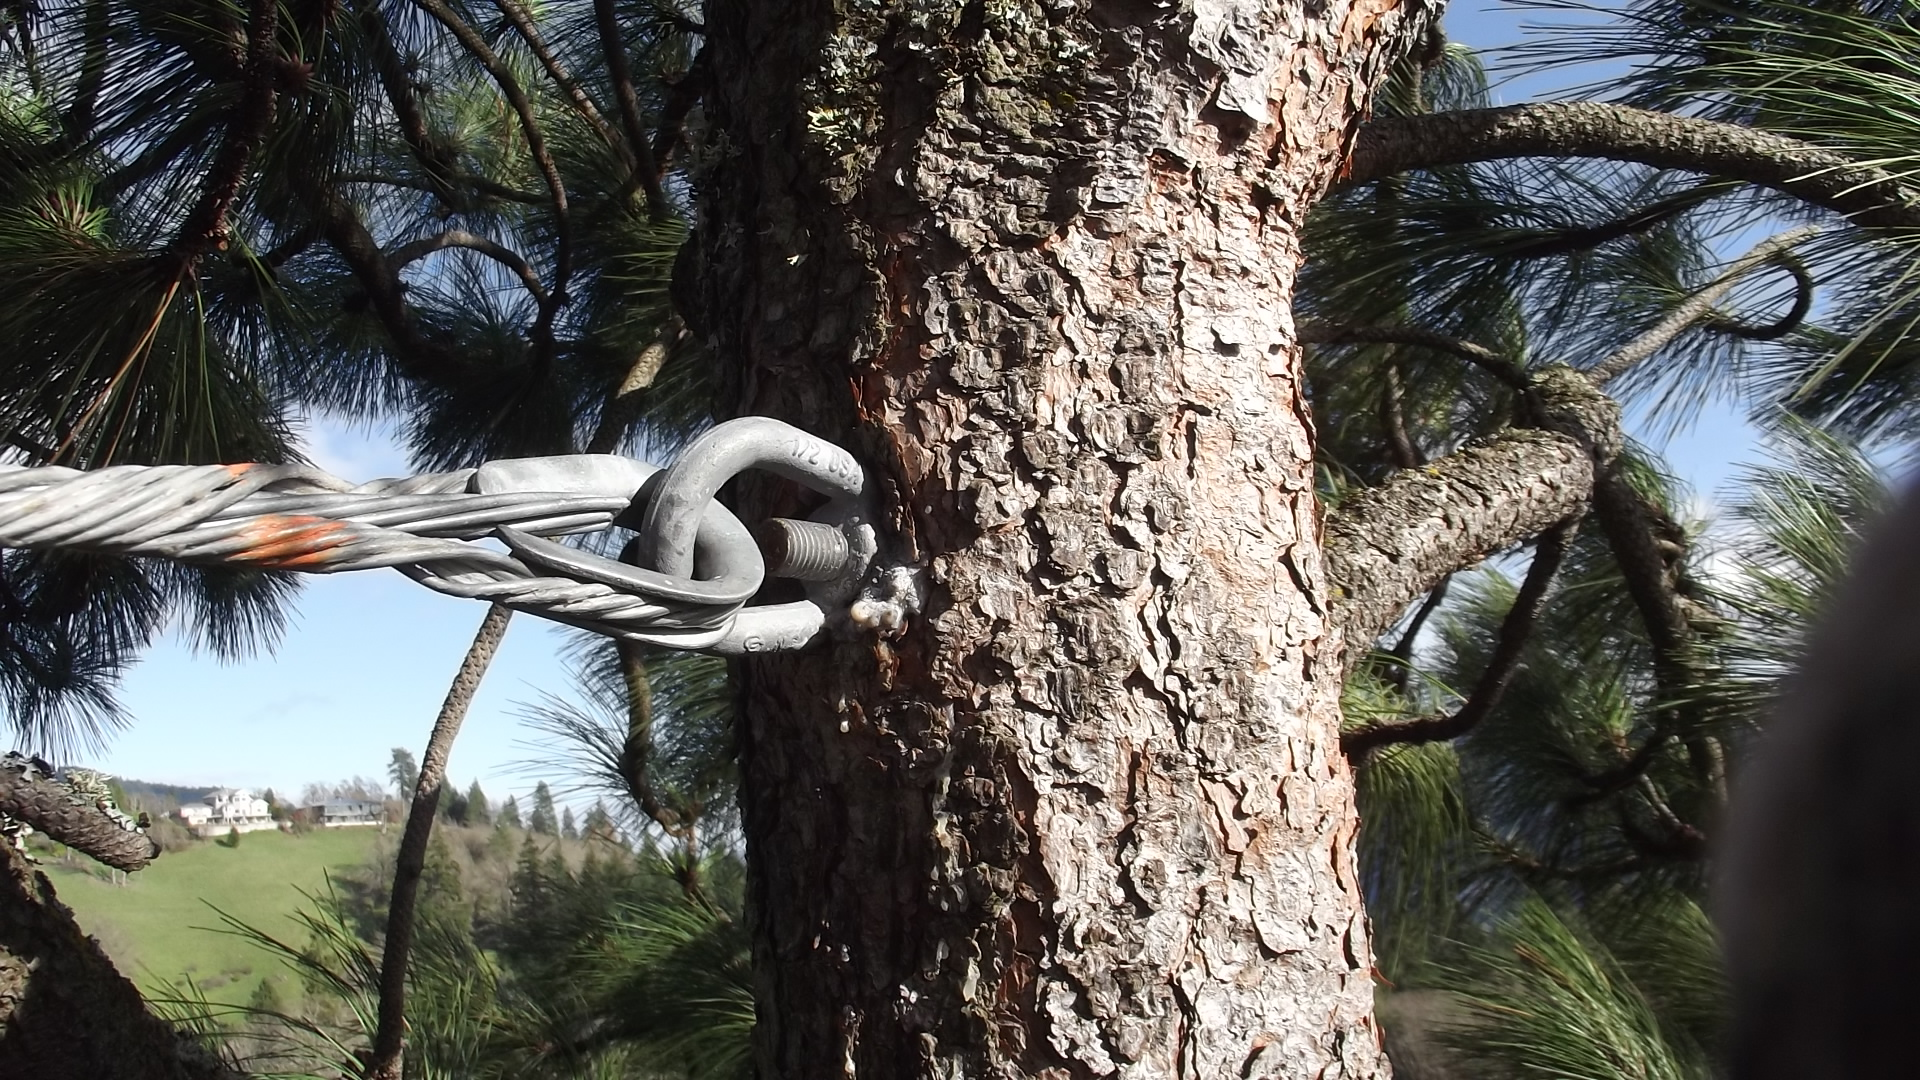 gorge-tree-services-cable-bracing-safety-bolts-harness-installation-support-multitrunk.jpg